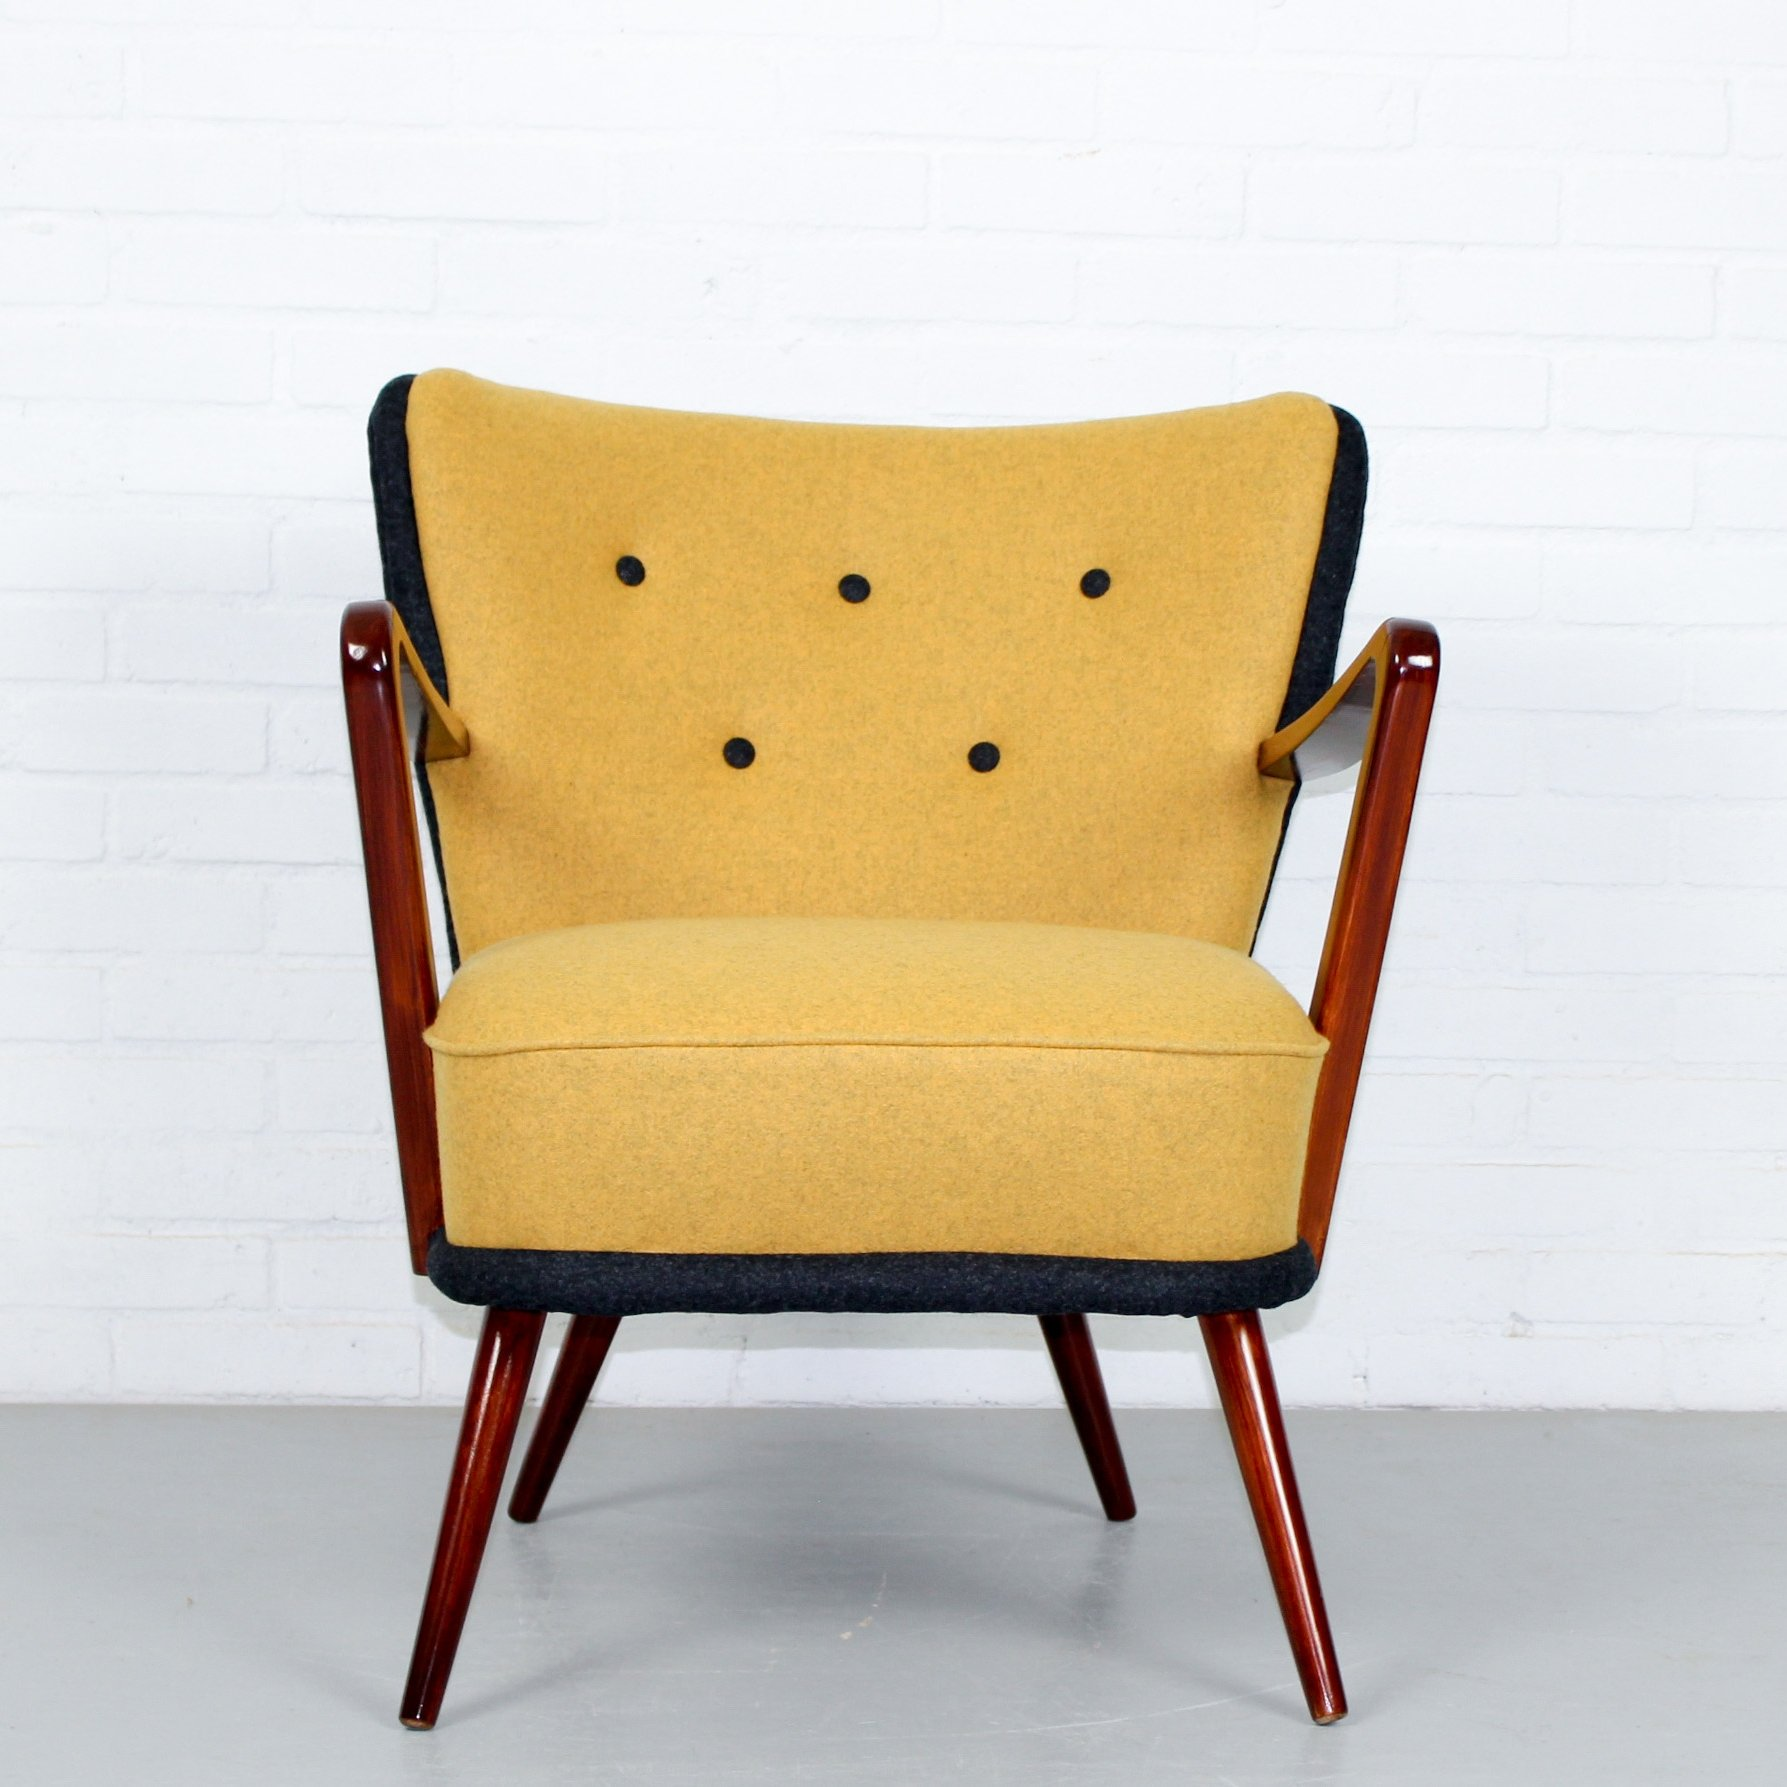 yellow panton sunlight chair